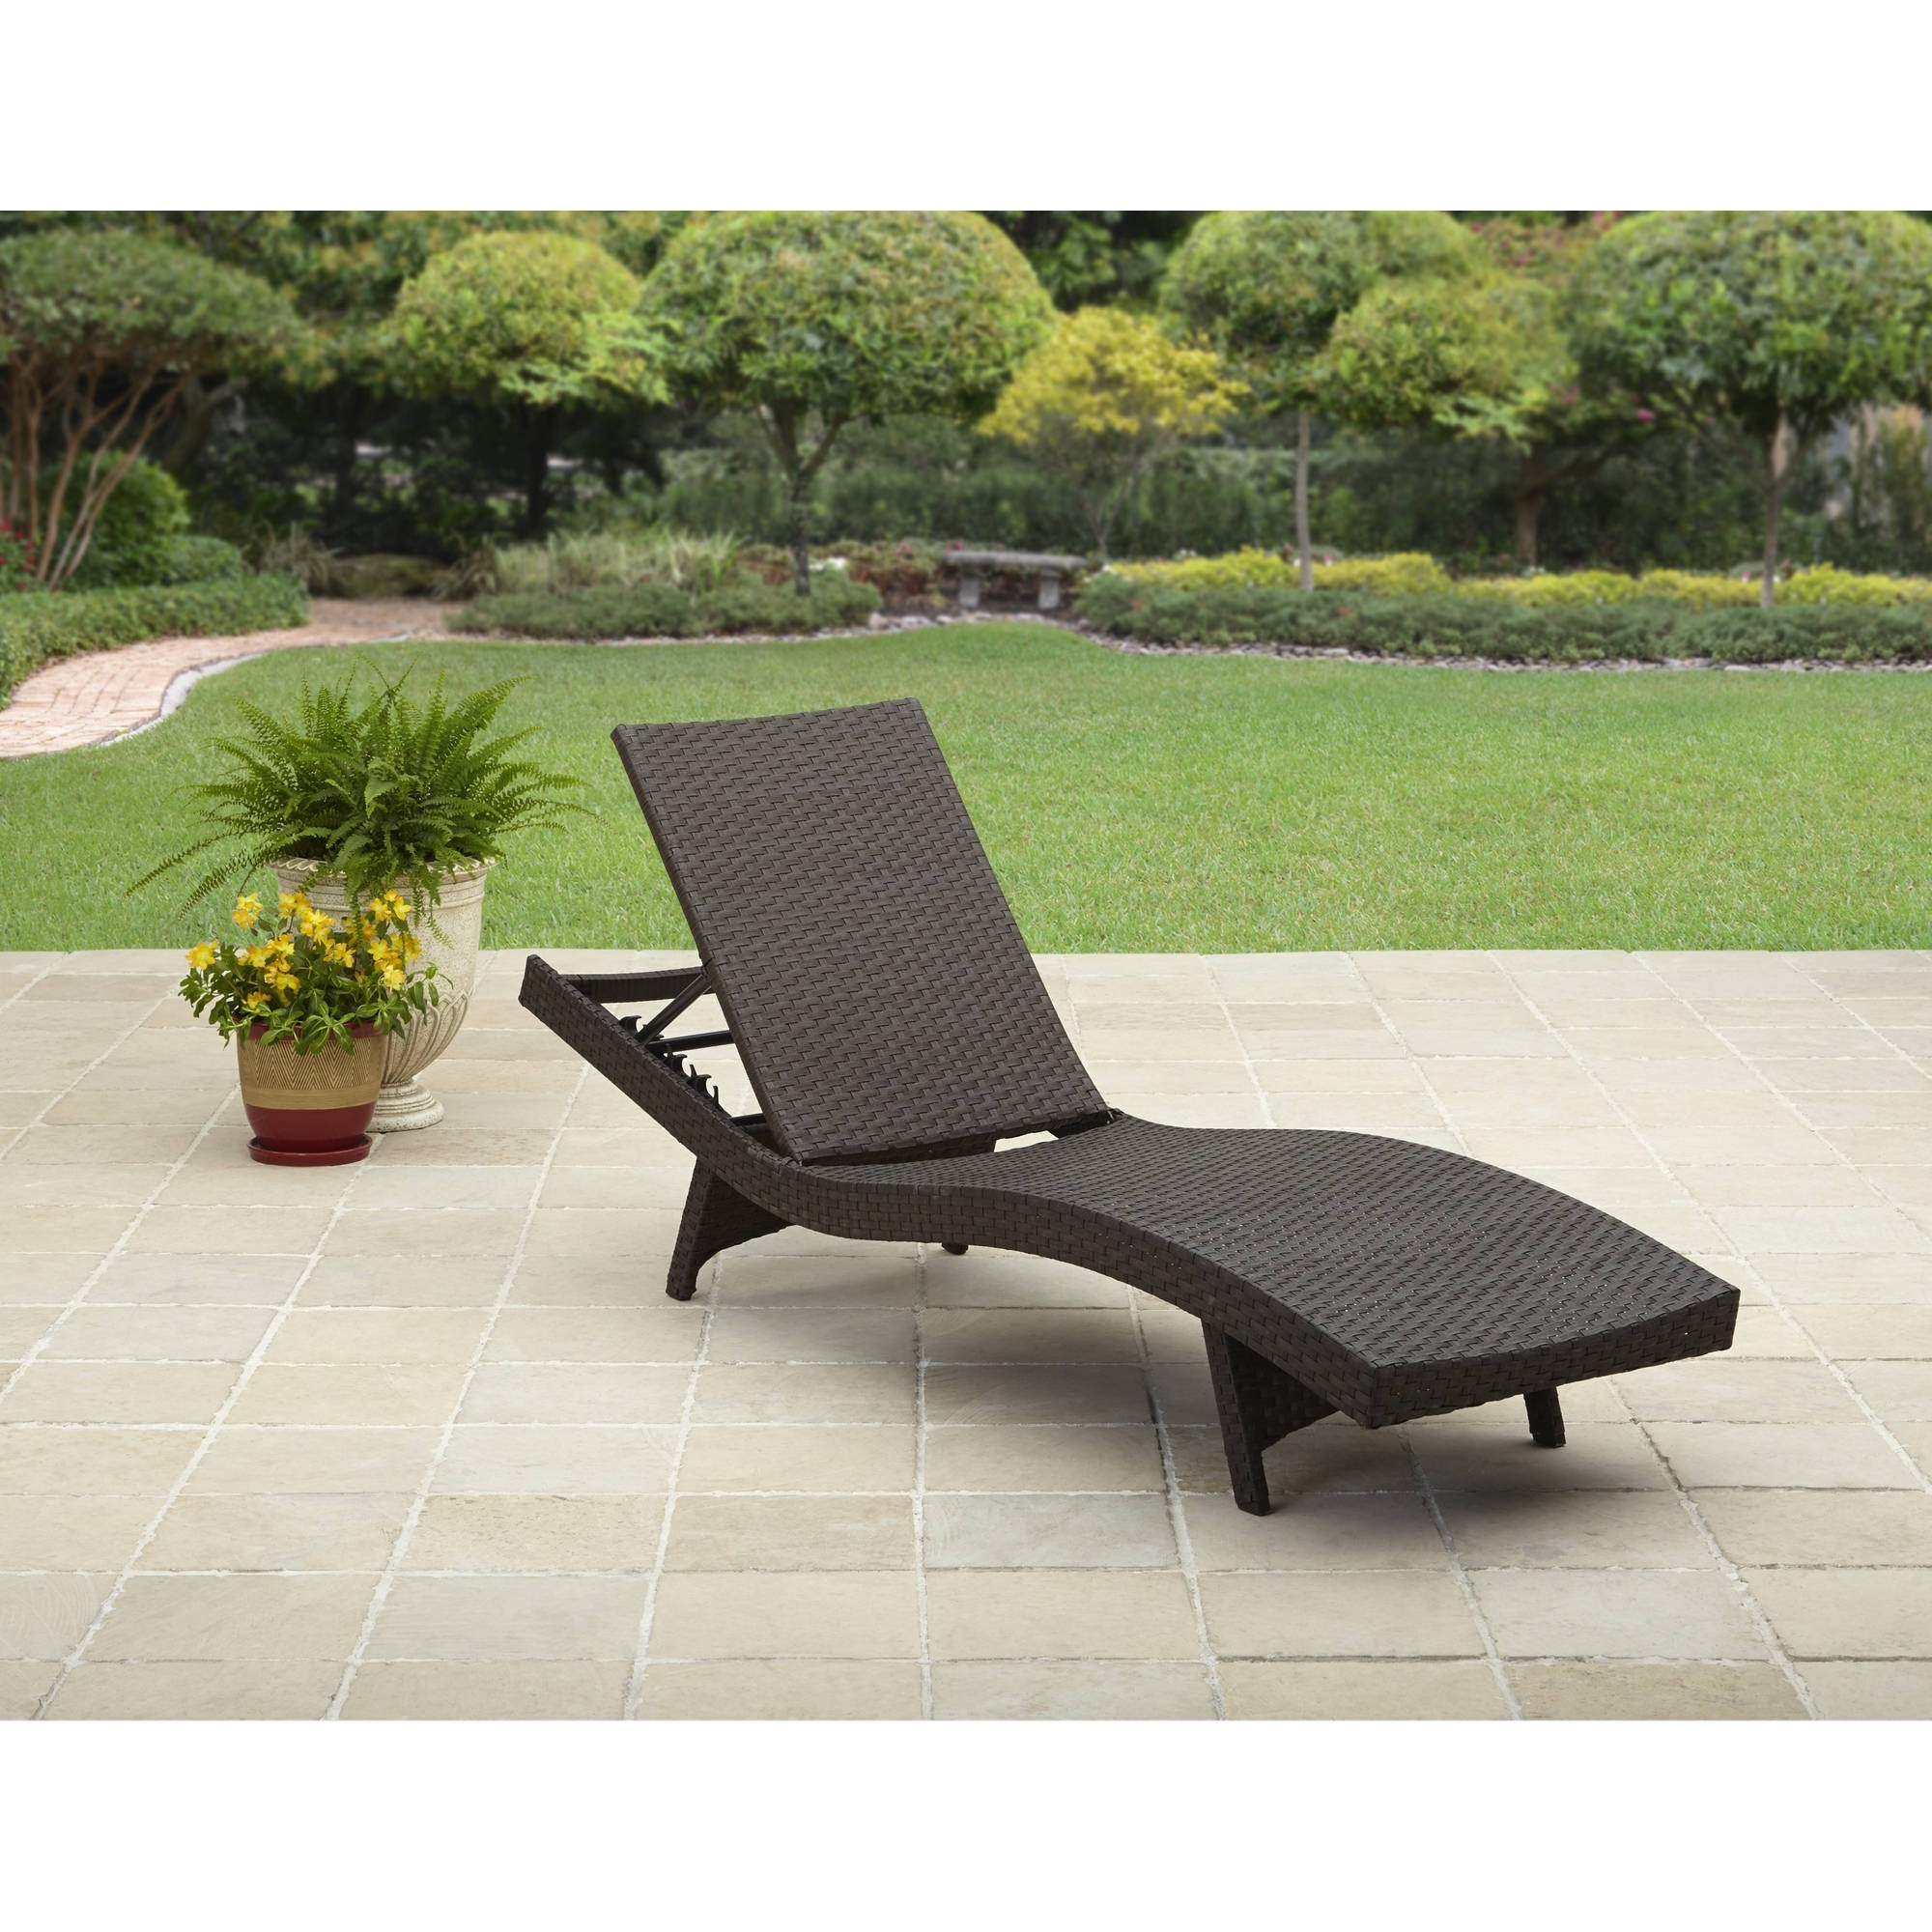 Better Homes And Gardens Avila Beach Chaise – Walmart With Regard To Newest Walmart Outdoor Chaise Lounges (View 2 of 15)